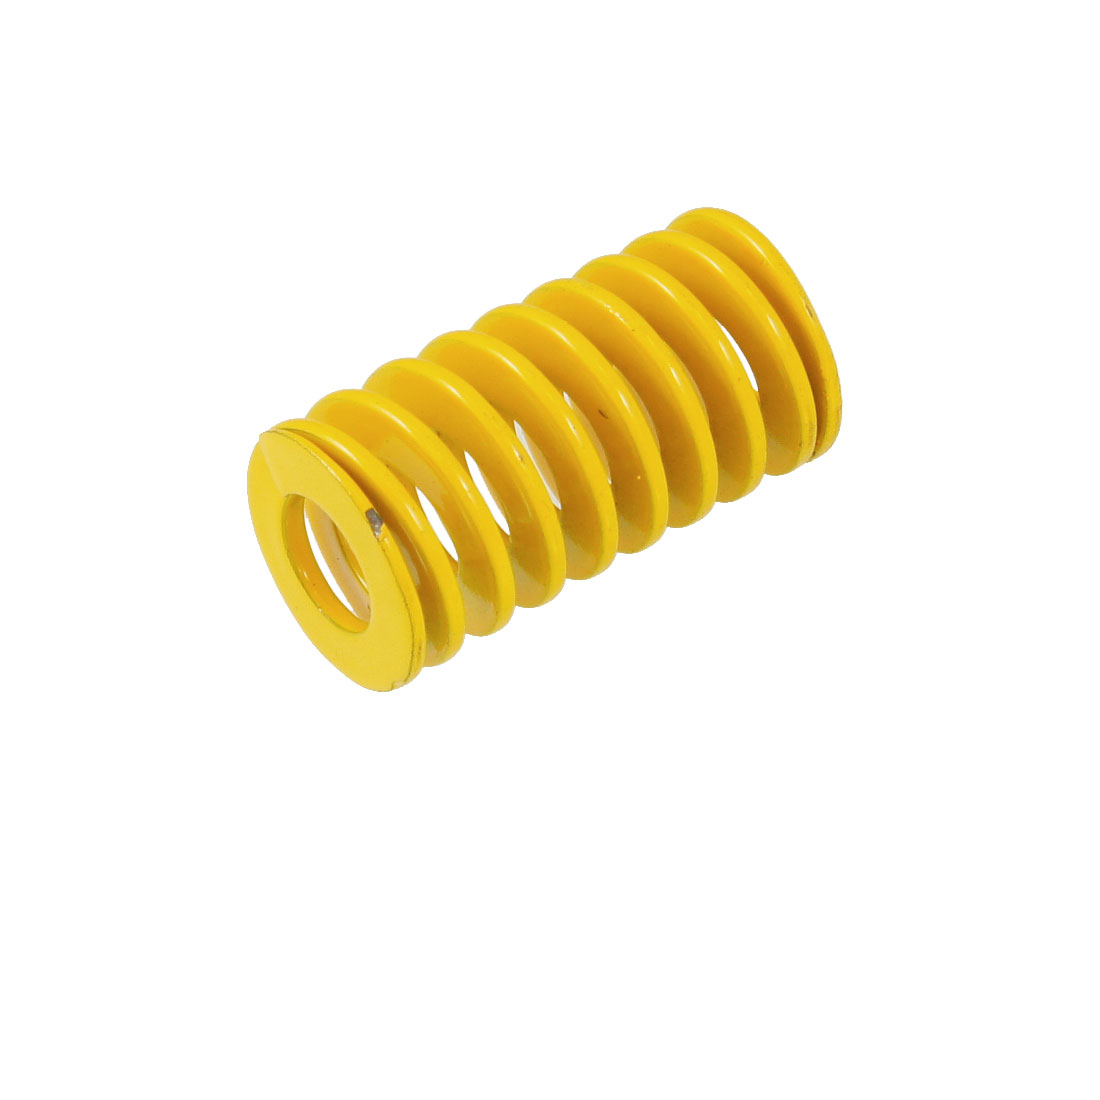 22mm x 11mm x 40mm Spiral Metal Stamping Compression Die Spring